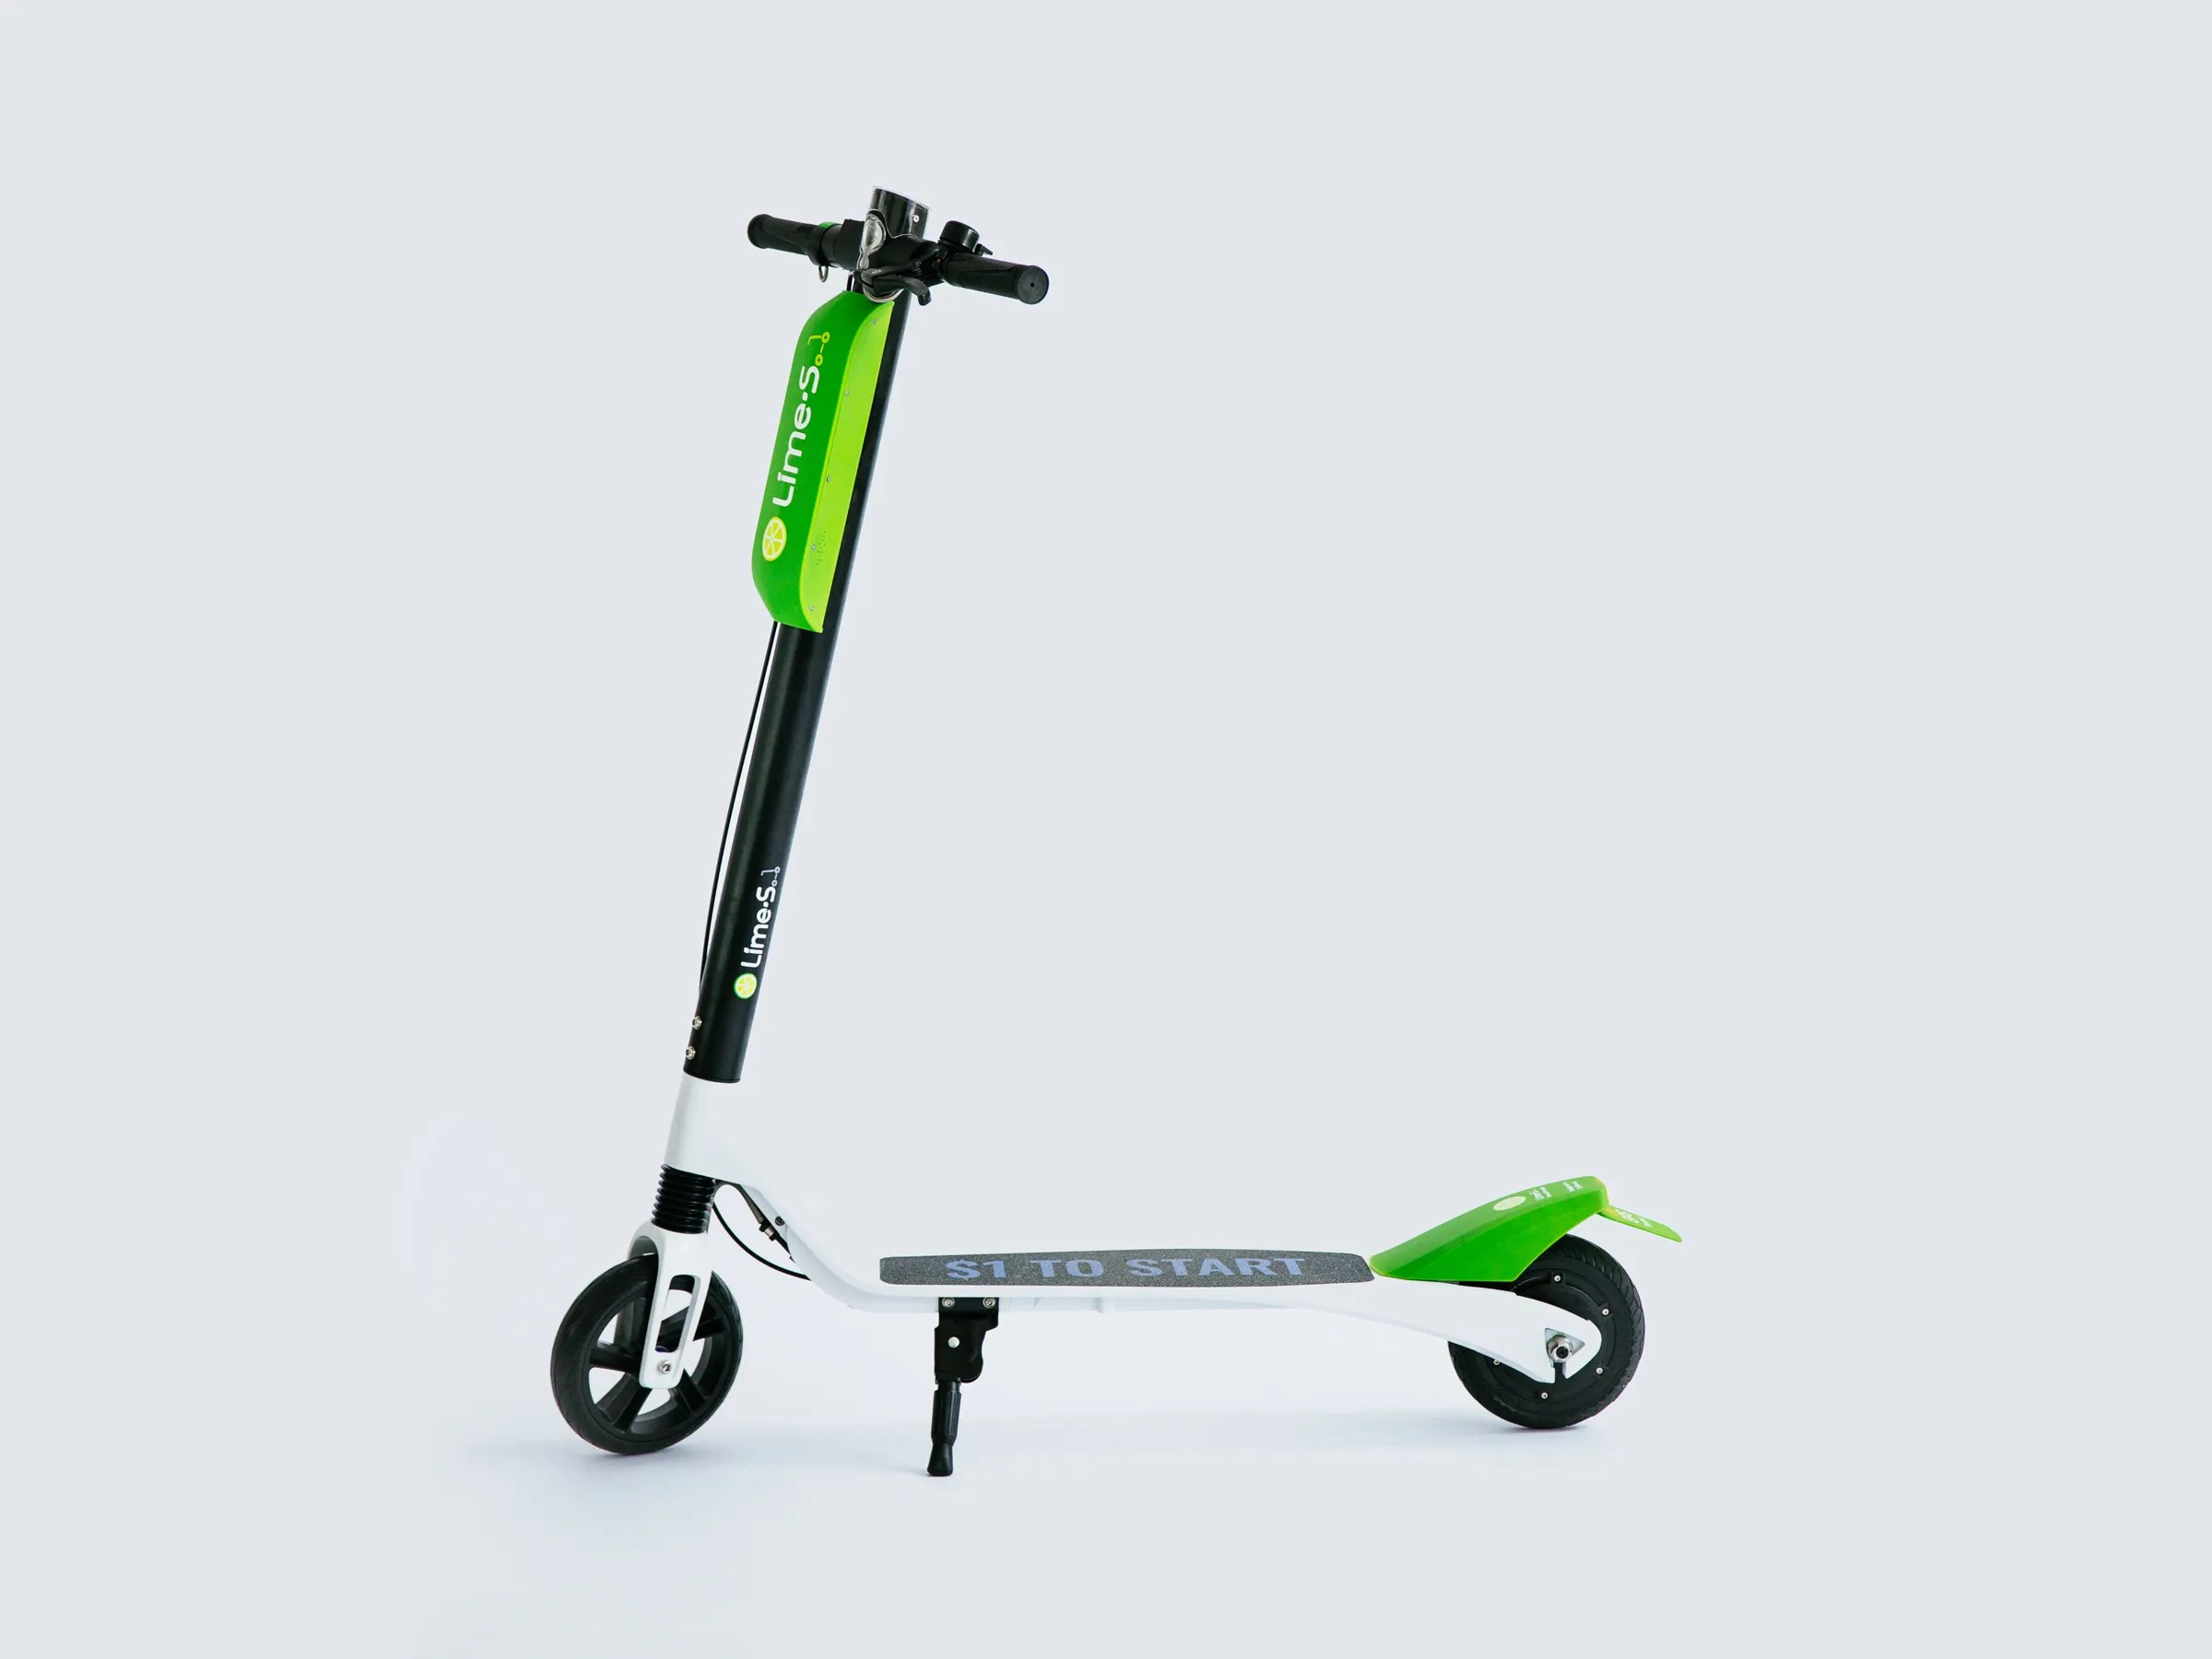 Motorized Scooter Laws